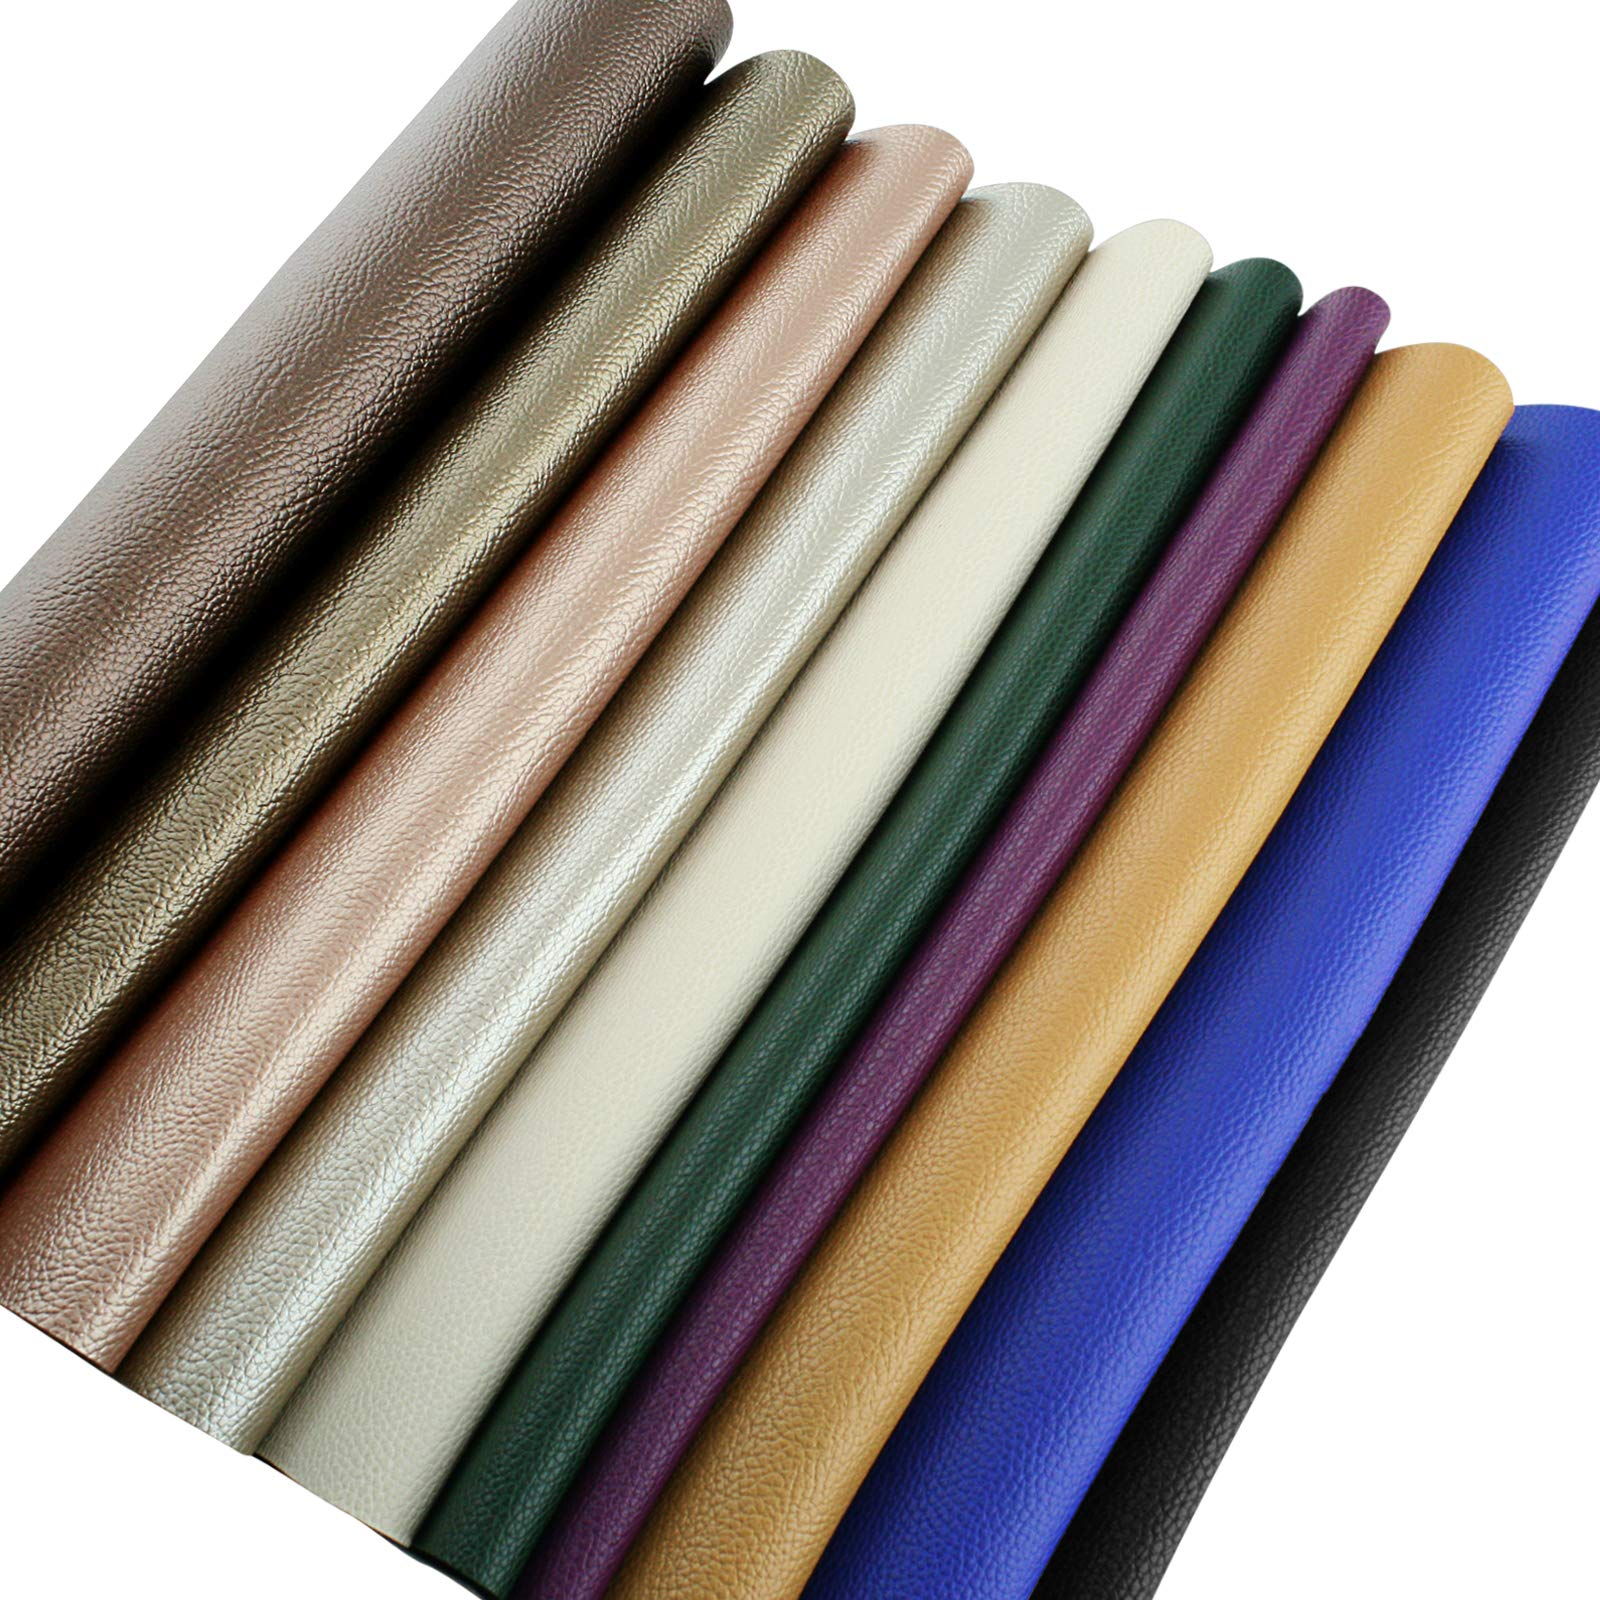 Faux Leather Sheets for Leathercraft Accesories with Cotton Fabric Back- 8'' x 13''(20 x 34 cm) Pack of 10 Faux Leather for Earring Making, Ribbon Bowls Crafts Making- 10 Colours of Faux Leather Sheets by MissLina Faux Leather Accesories (Image #9)